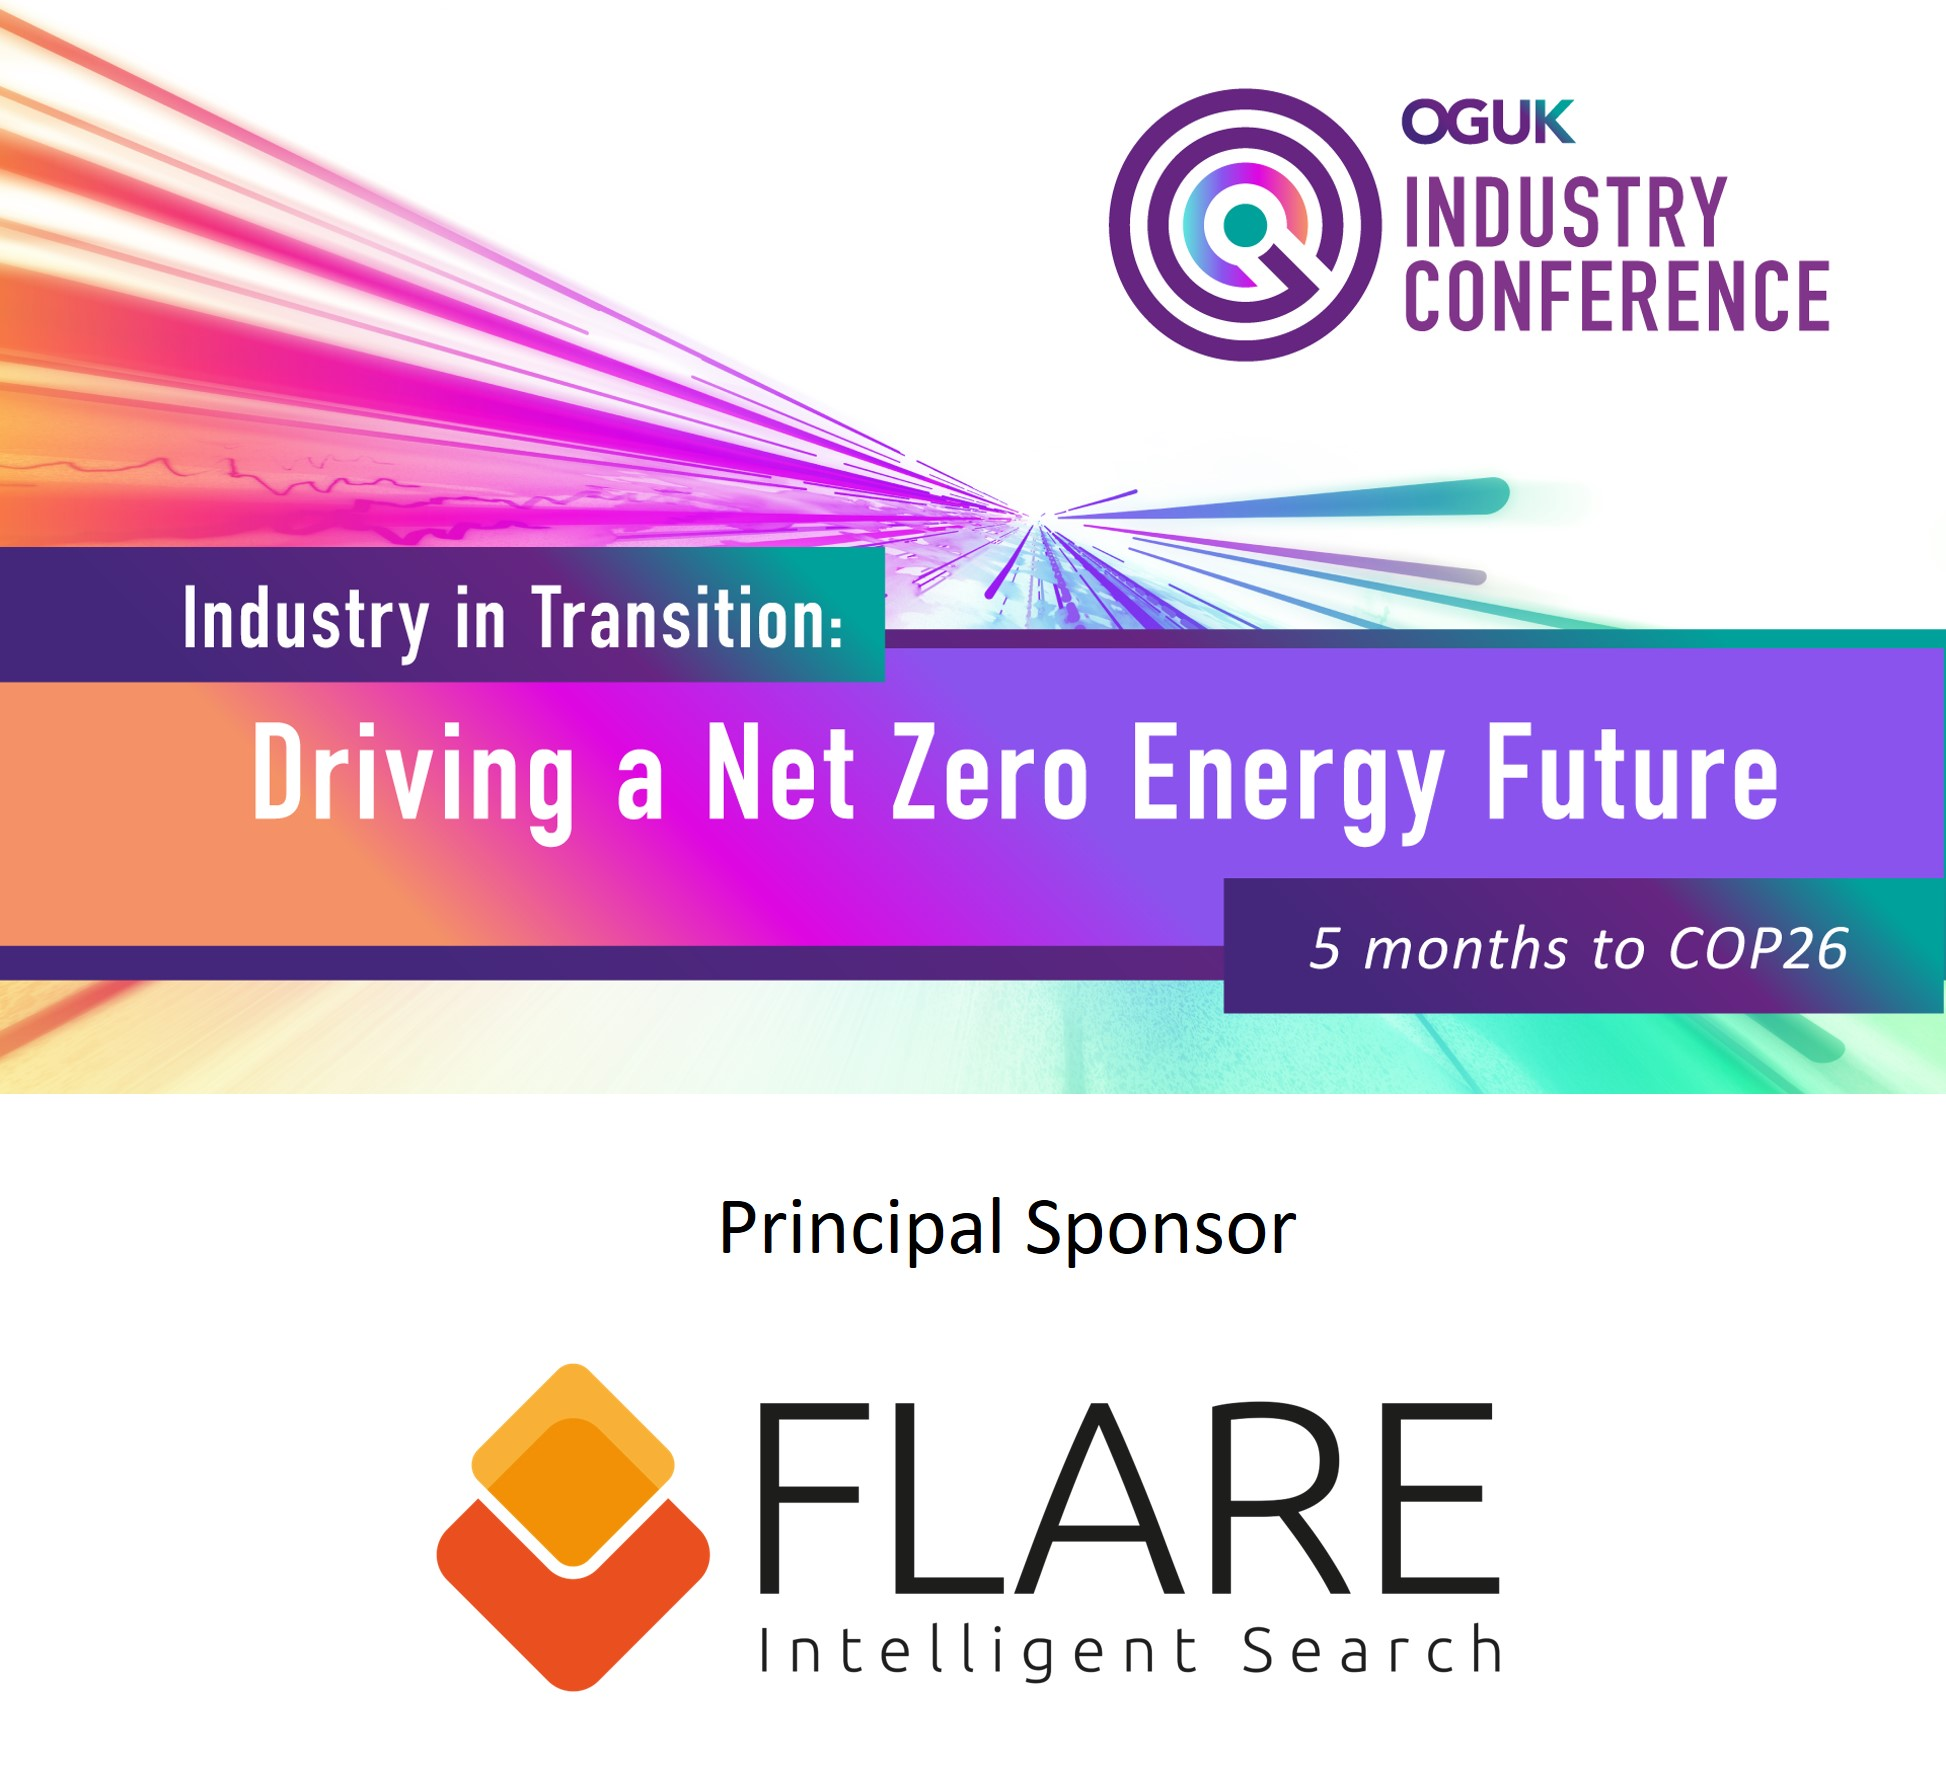 Industry in Transition:  Driving a Net Zero  Energy Future - 5 months to COP26